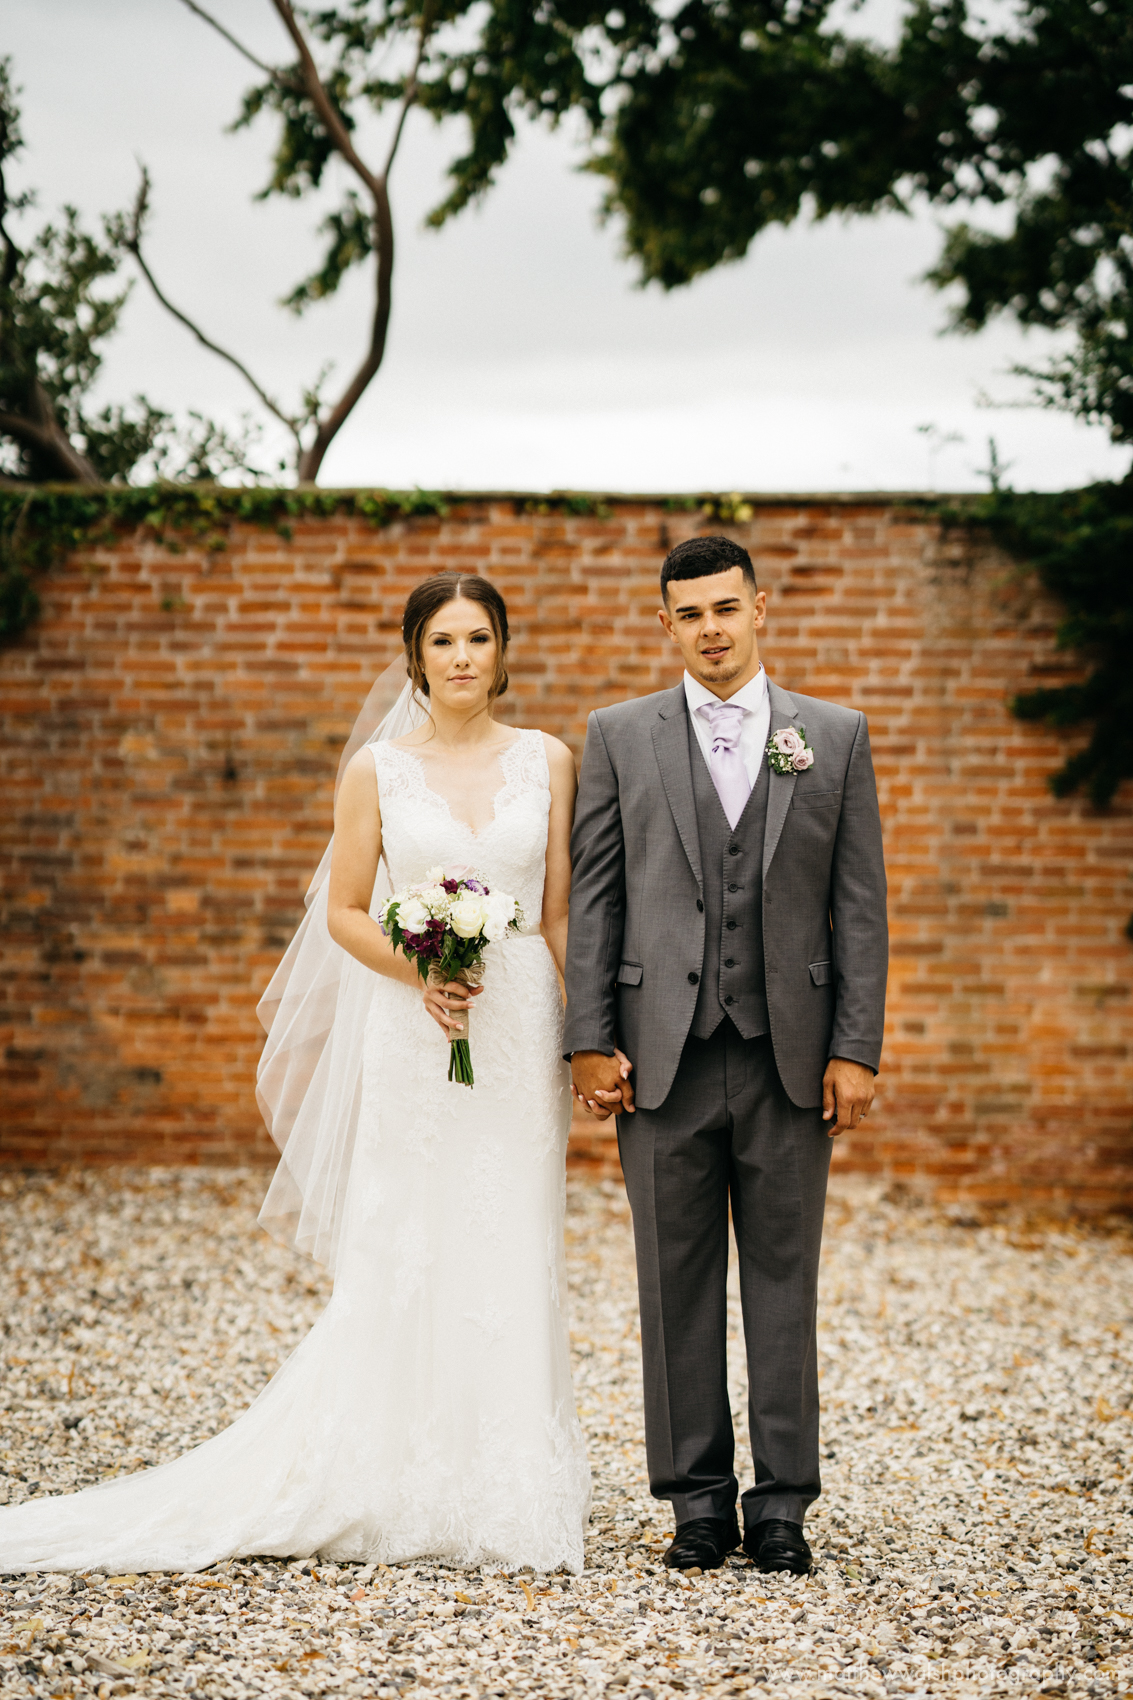 A personal favourite and a must is the classic bride and groom together shot